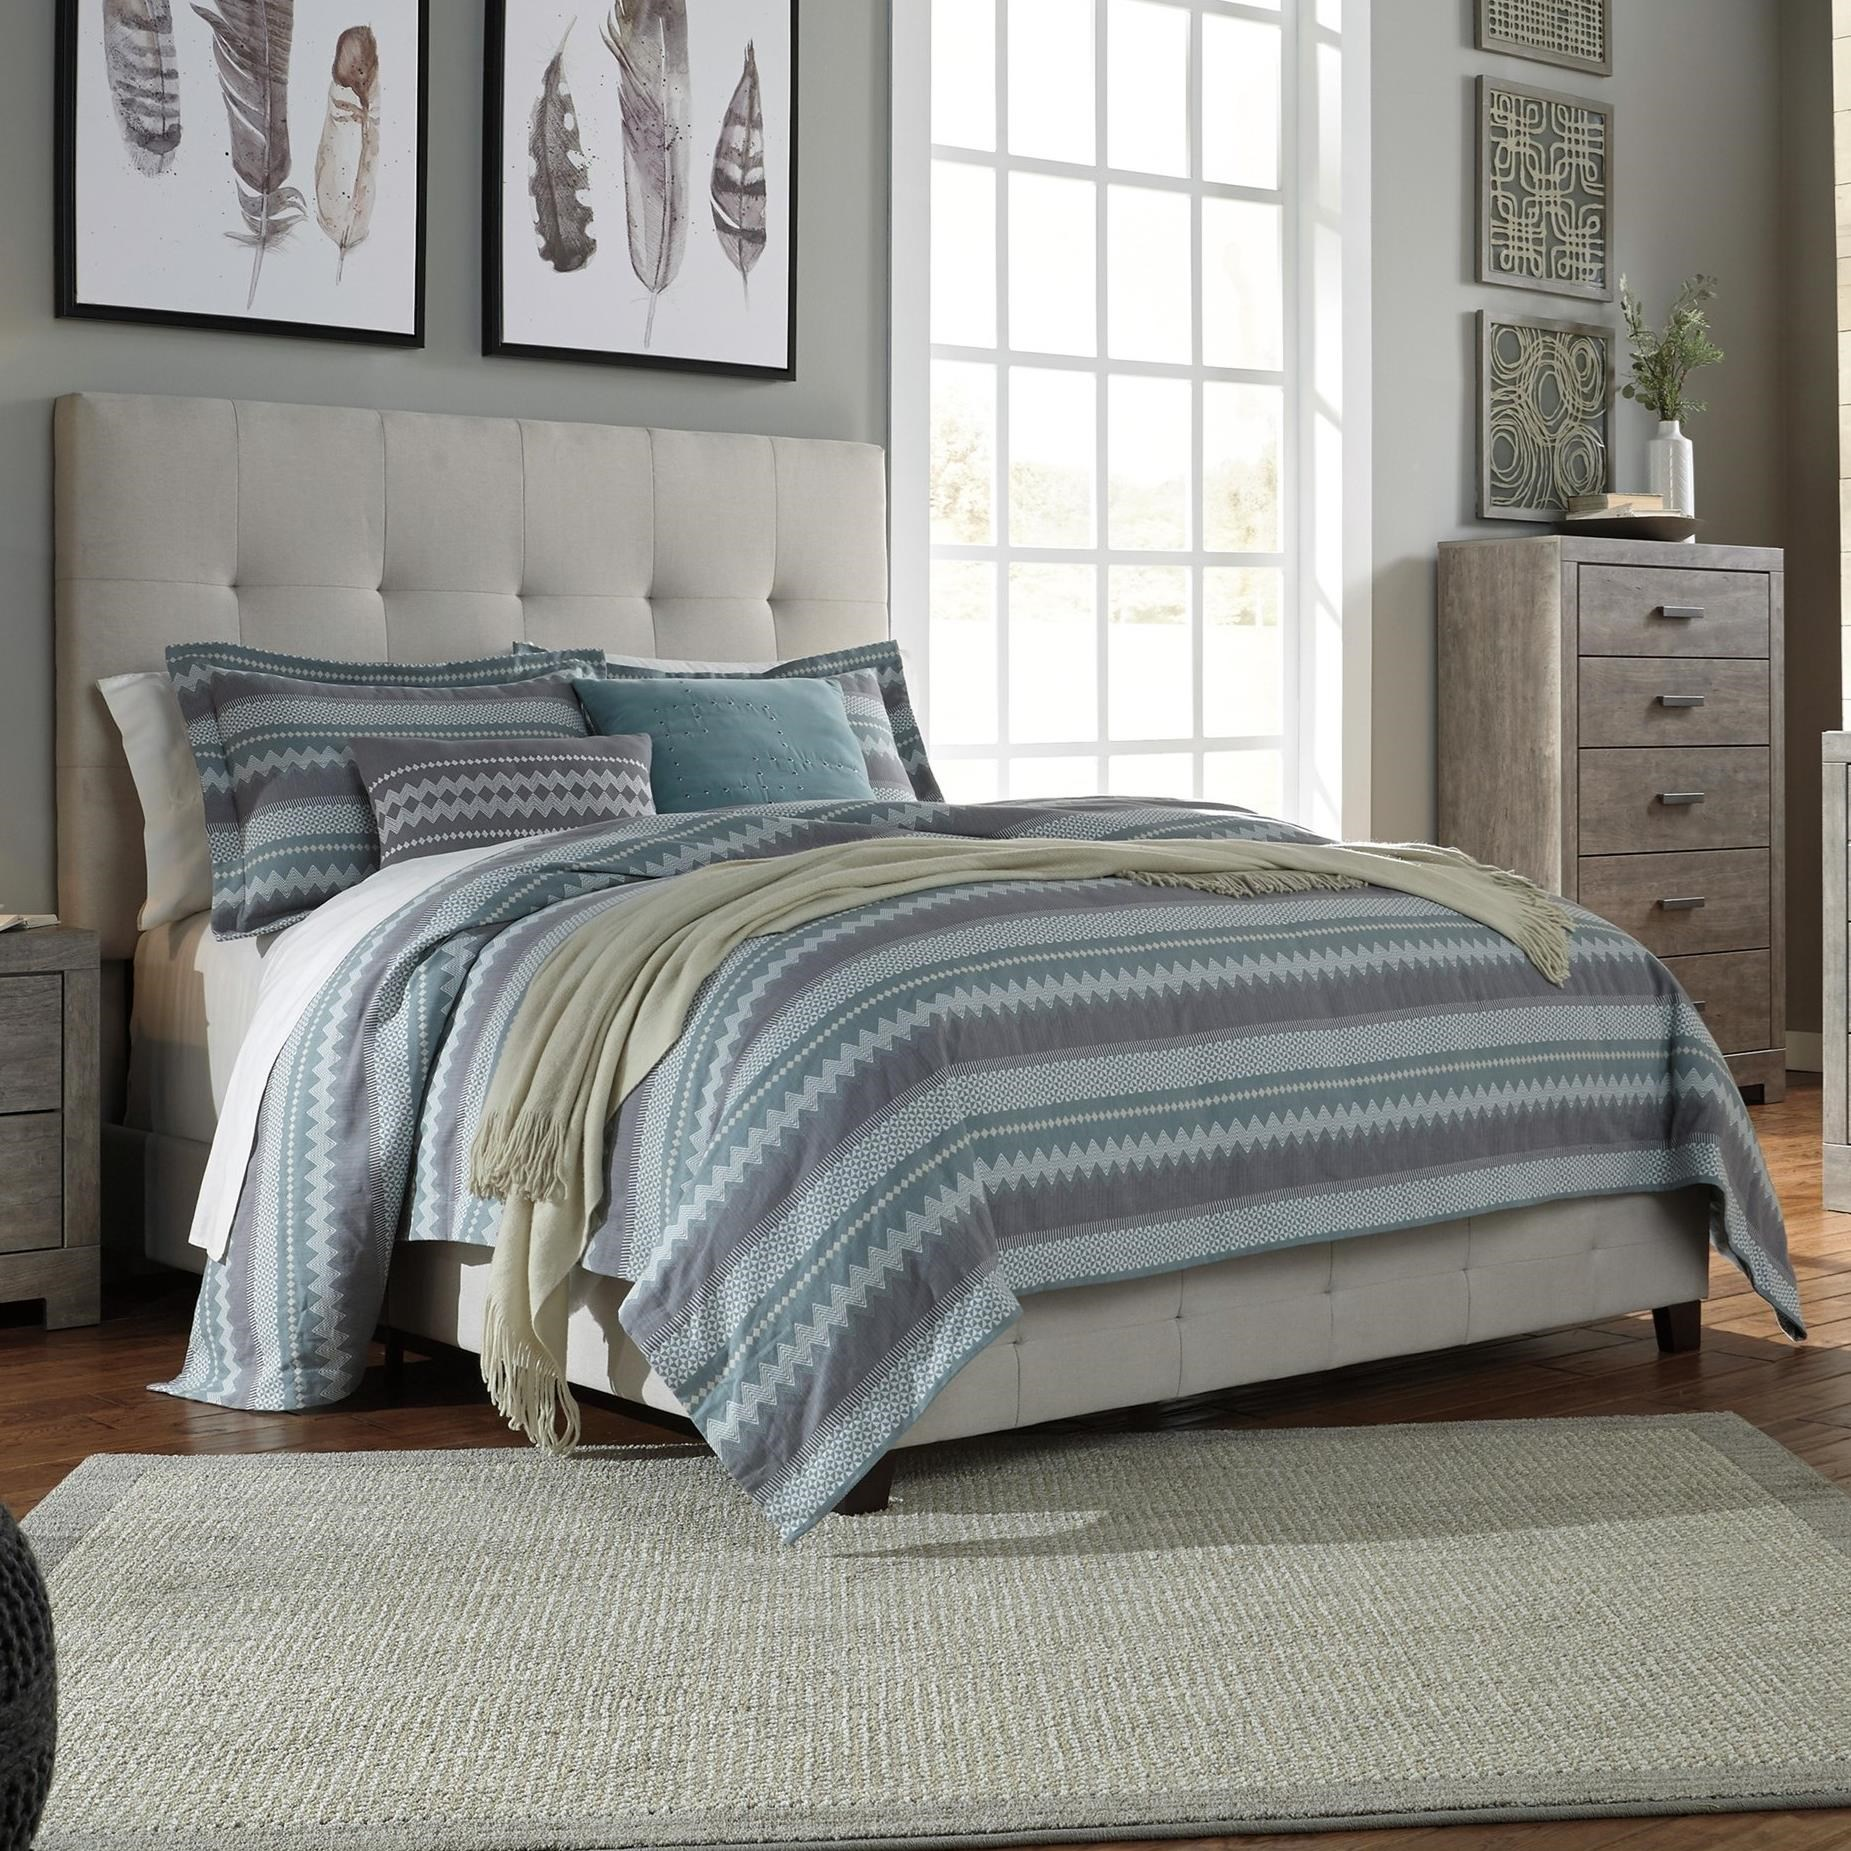 Ashley Signature Design Contemporary Upholstered Beds King